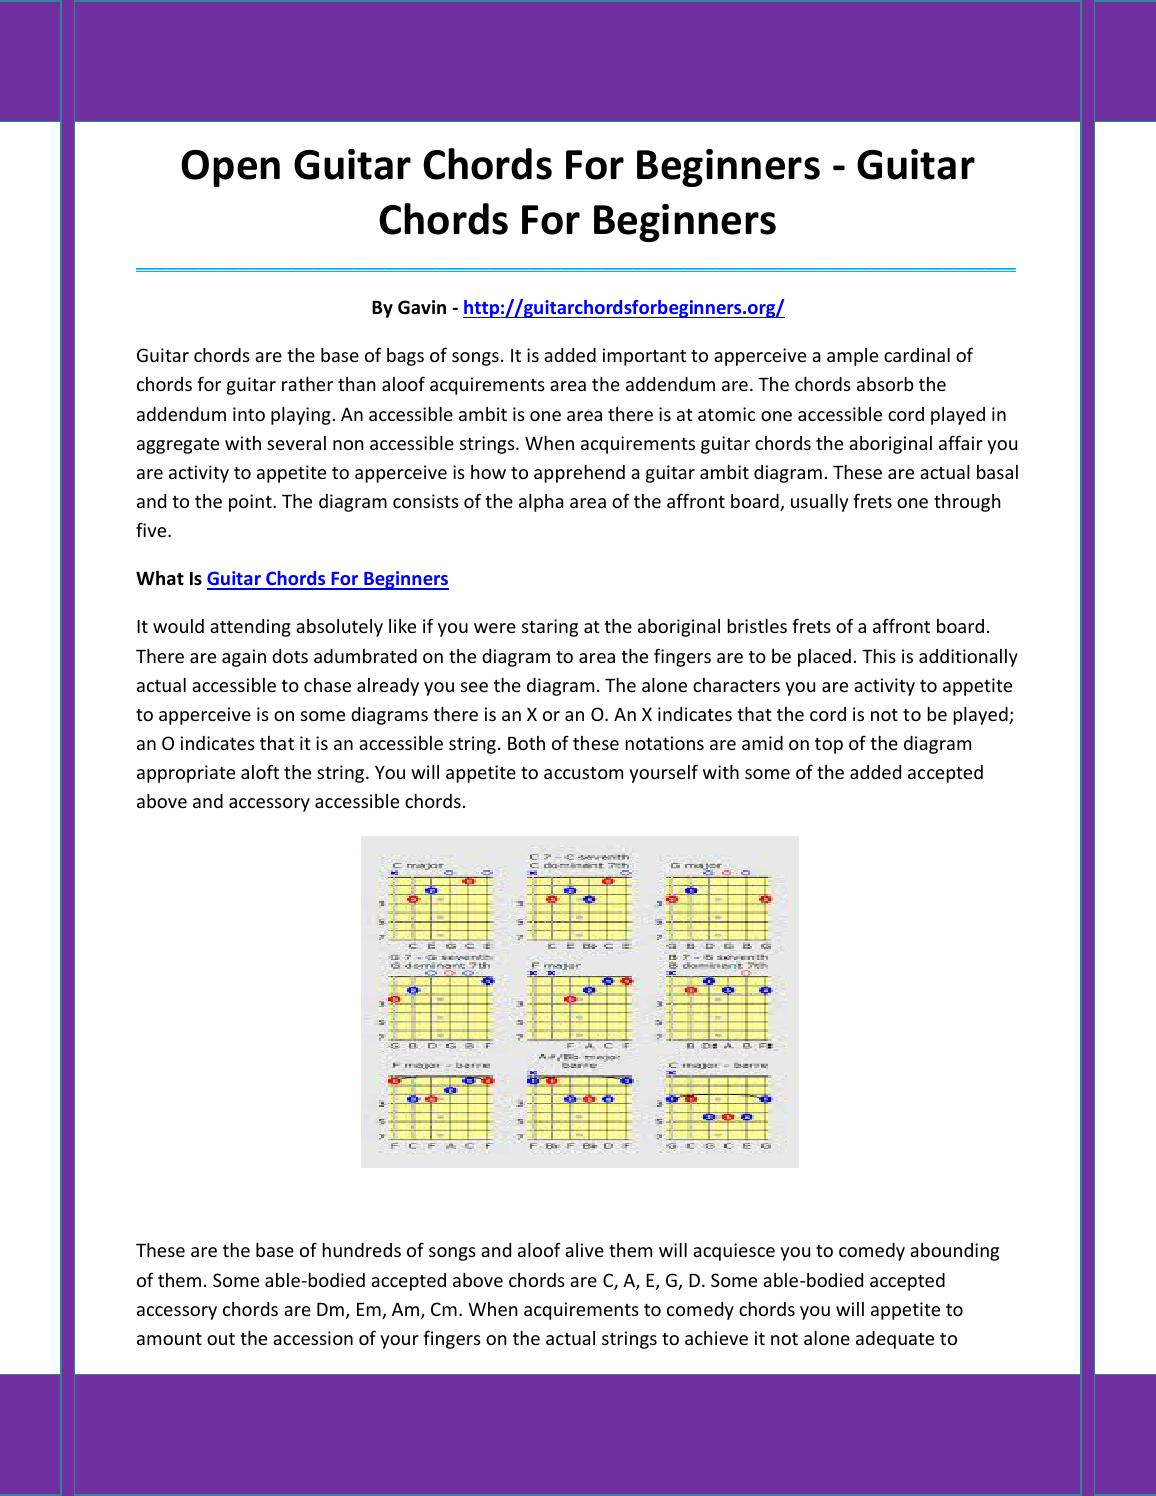 Guitar Chords For Beginners By Asahfdads Issuu